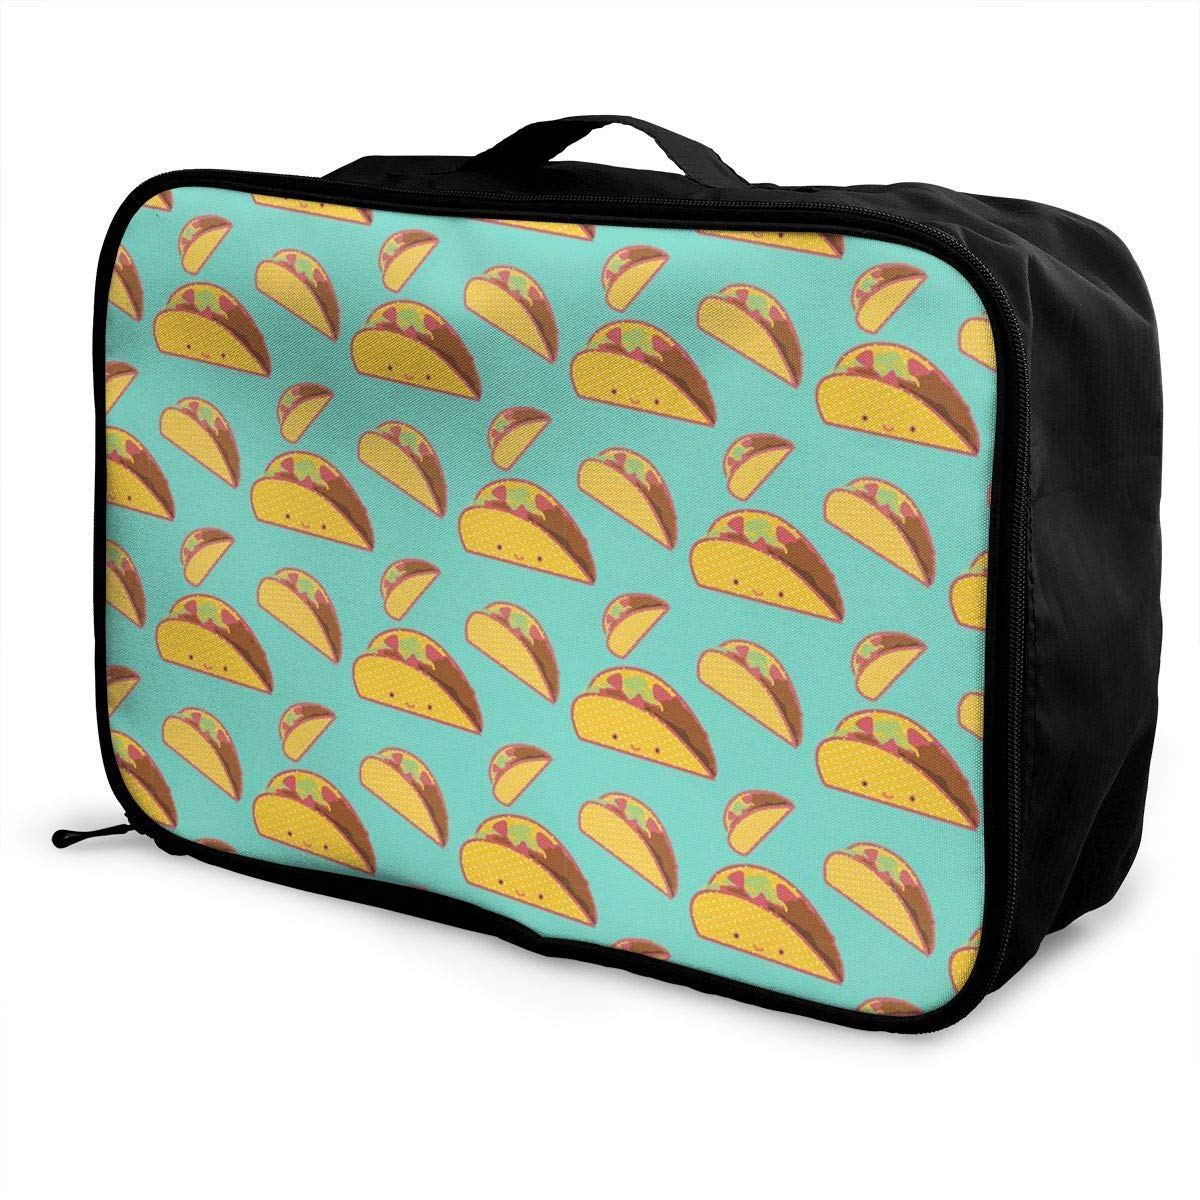 Portable Luggage Duffel Bag Taco Pattern Travel Bags Carry-on In Trolley Handle